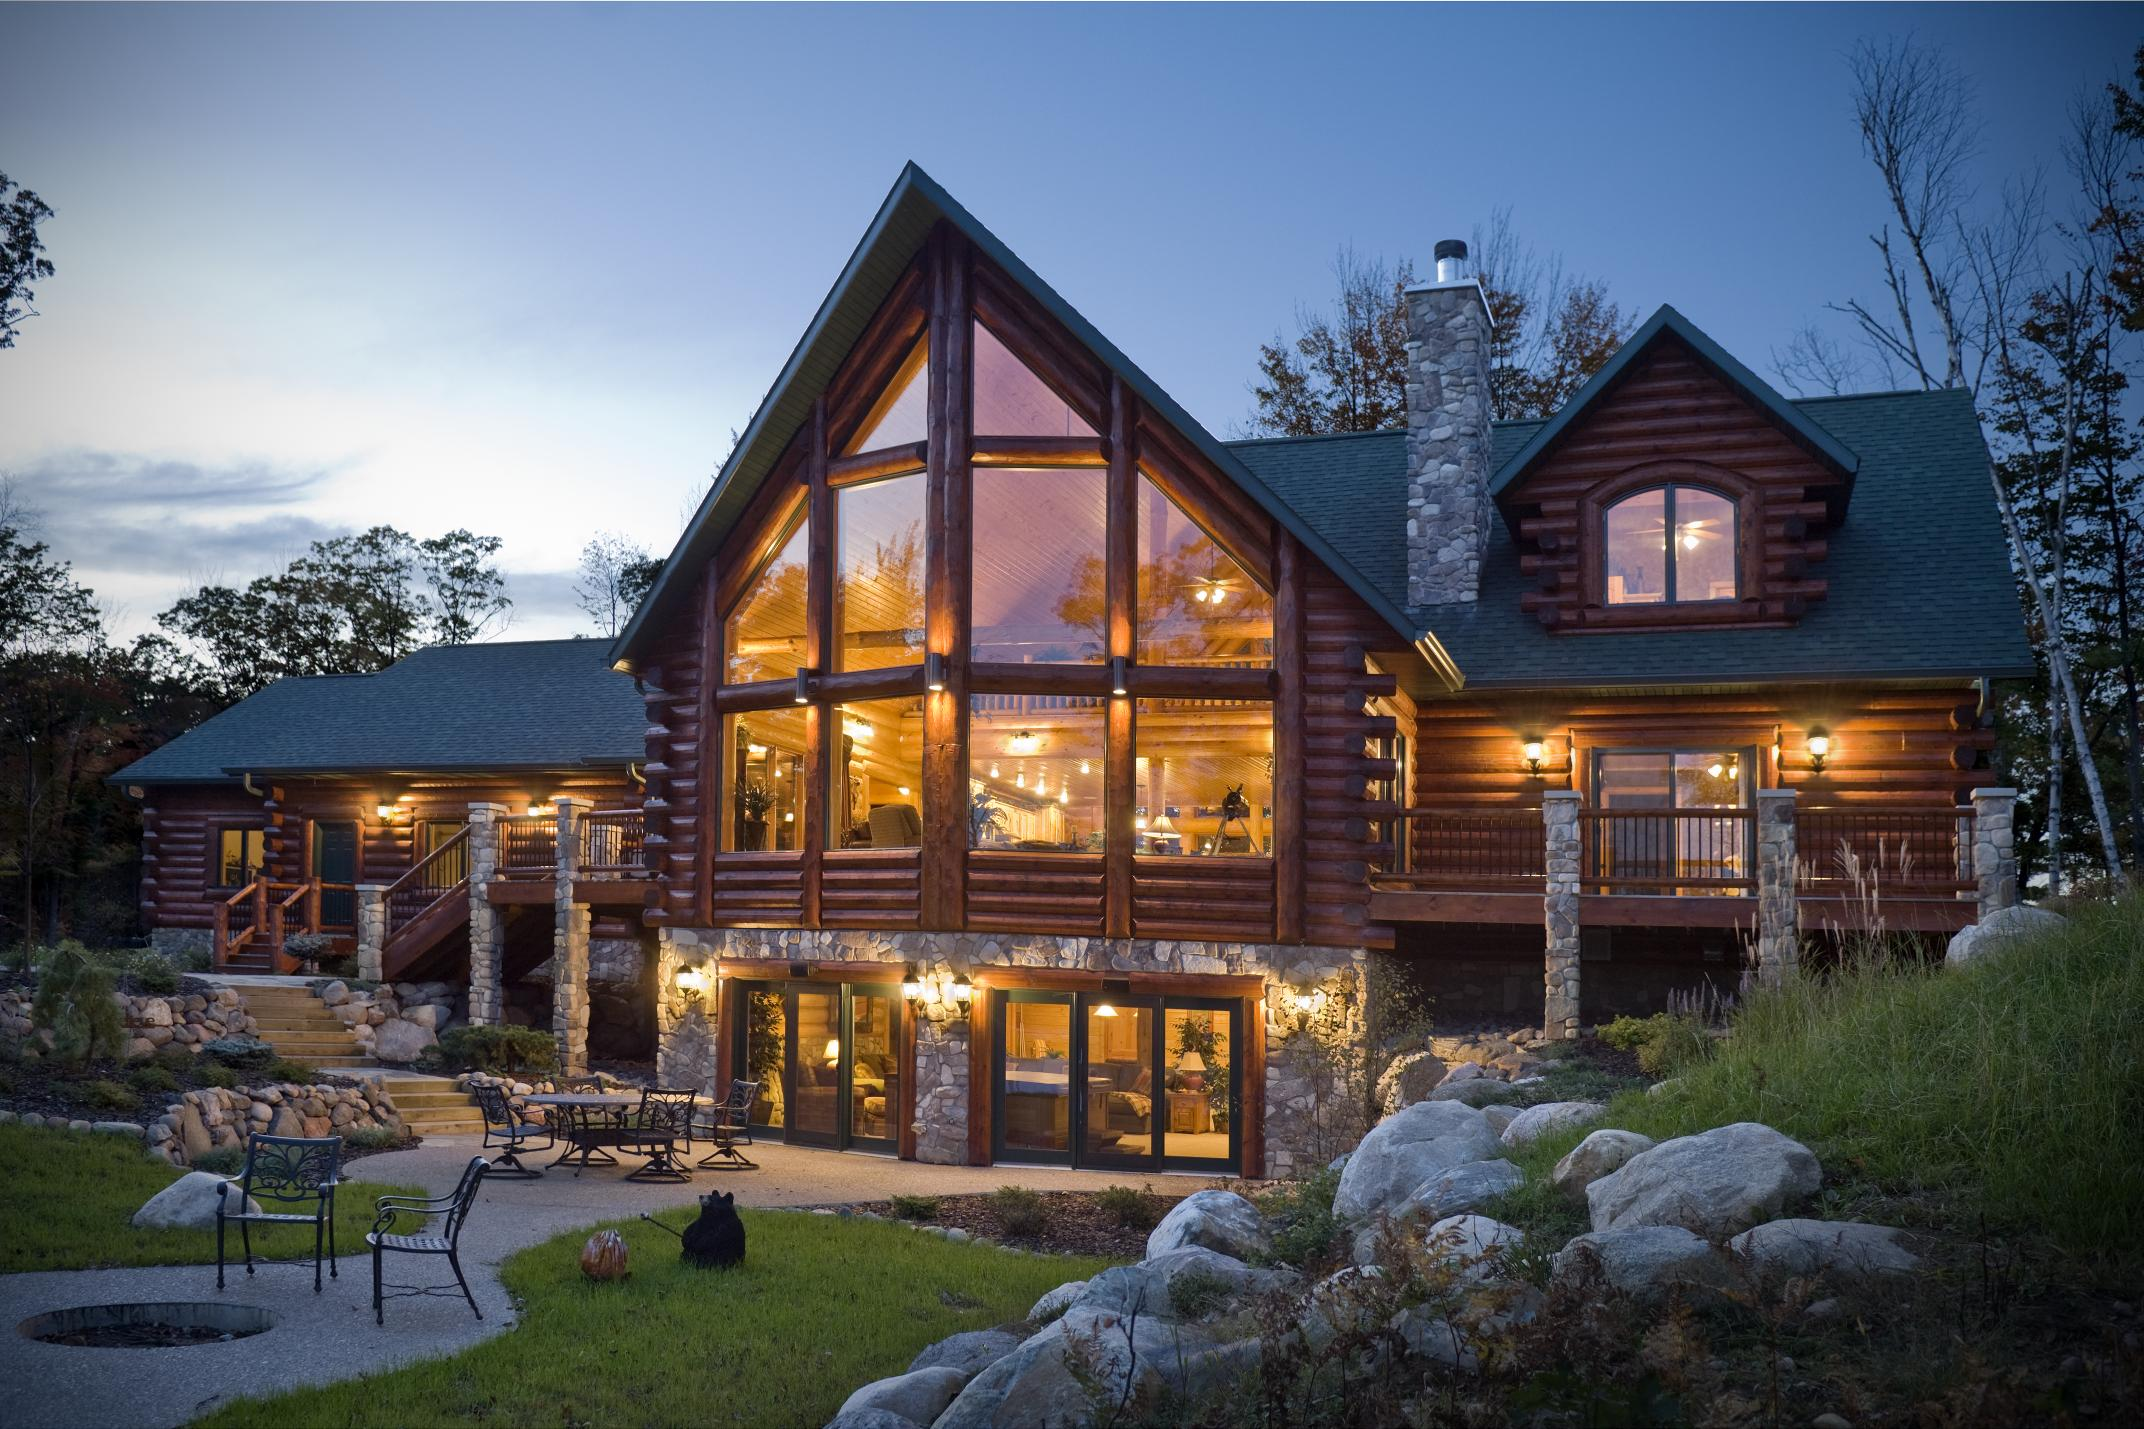 Sashco log home products and golden eagle log homes expand distribution Homes with lots of beautiful natural wood